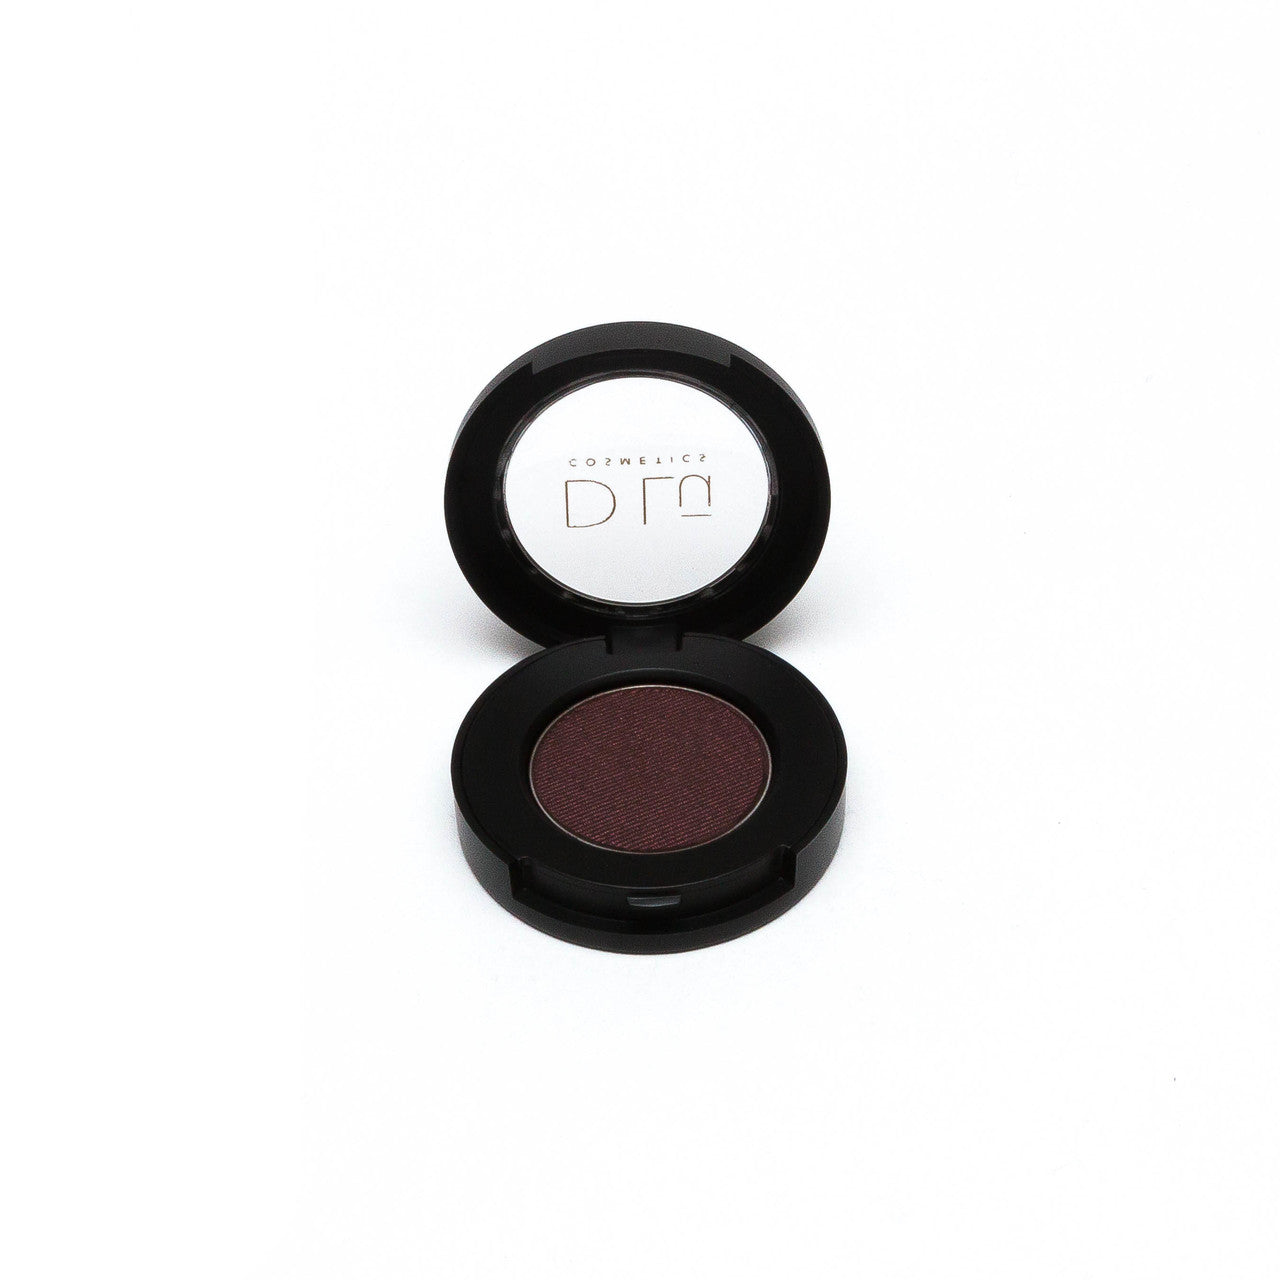 DLu Royale Eyeshadow - Black Cherry